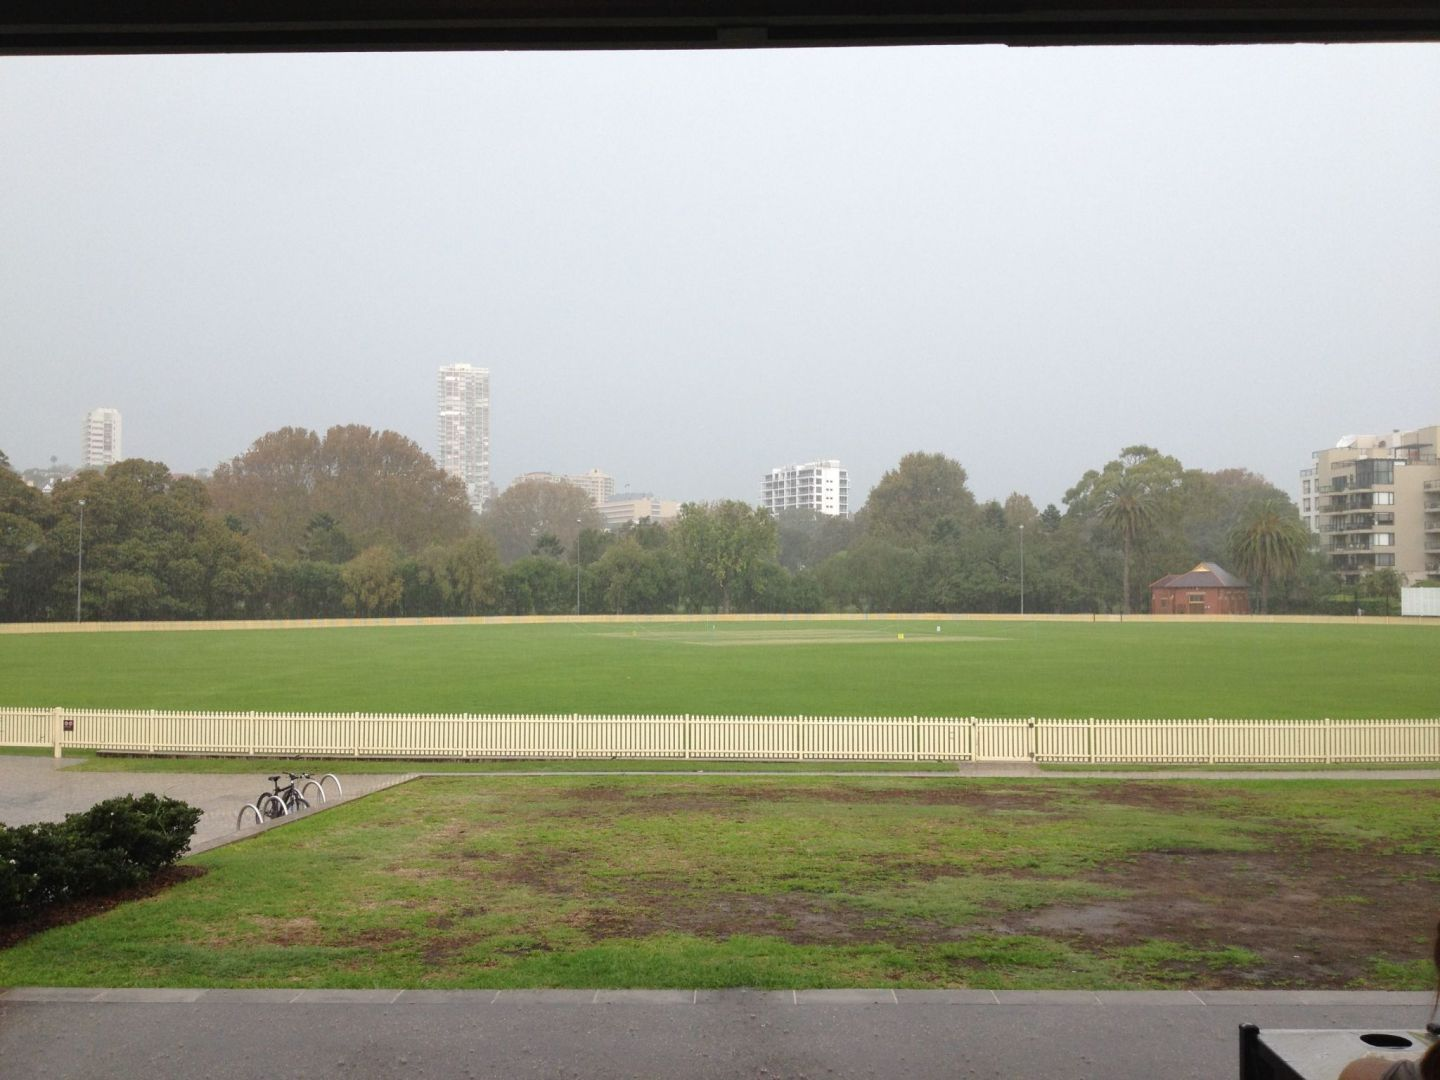 Watching the rain from a cricket pavilion in Rushcutters Bay, Sydney